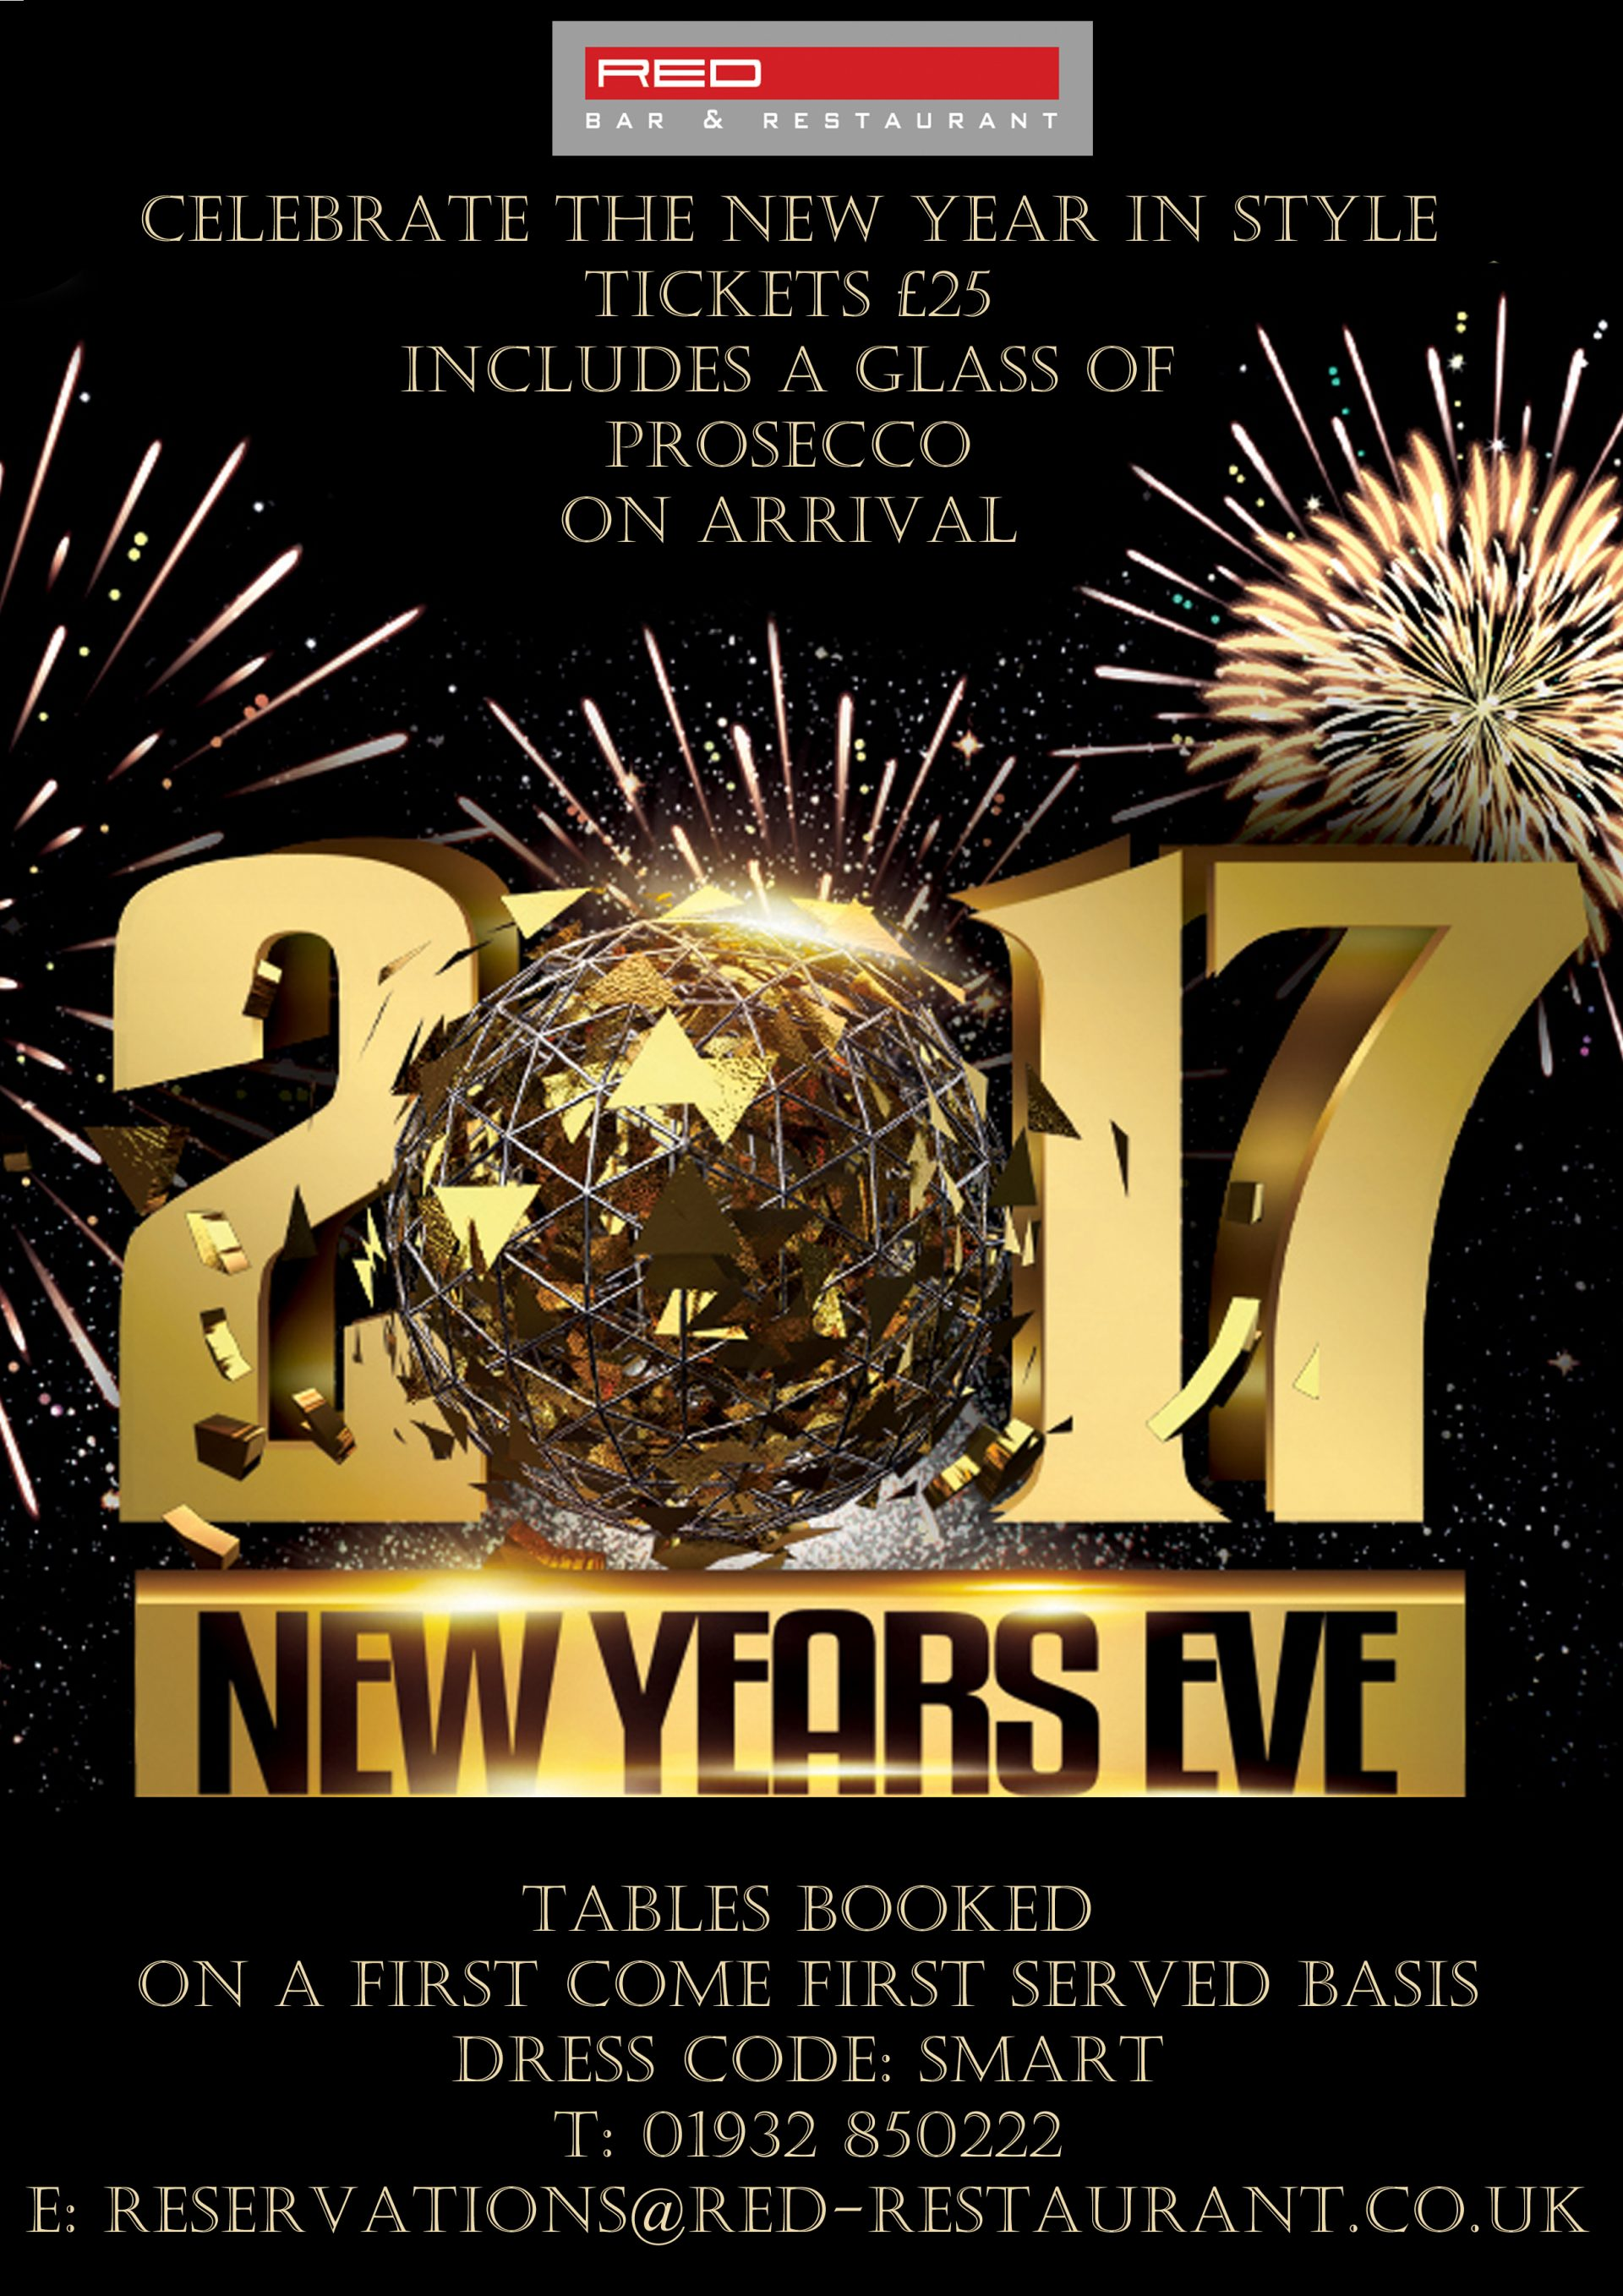 CELEBRATE NEW YEARS EVE 2017